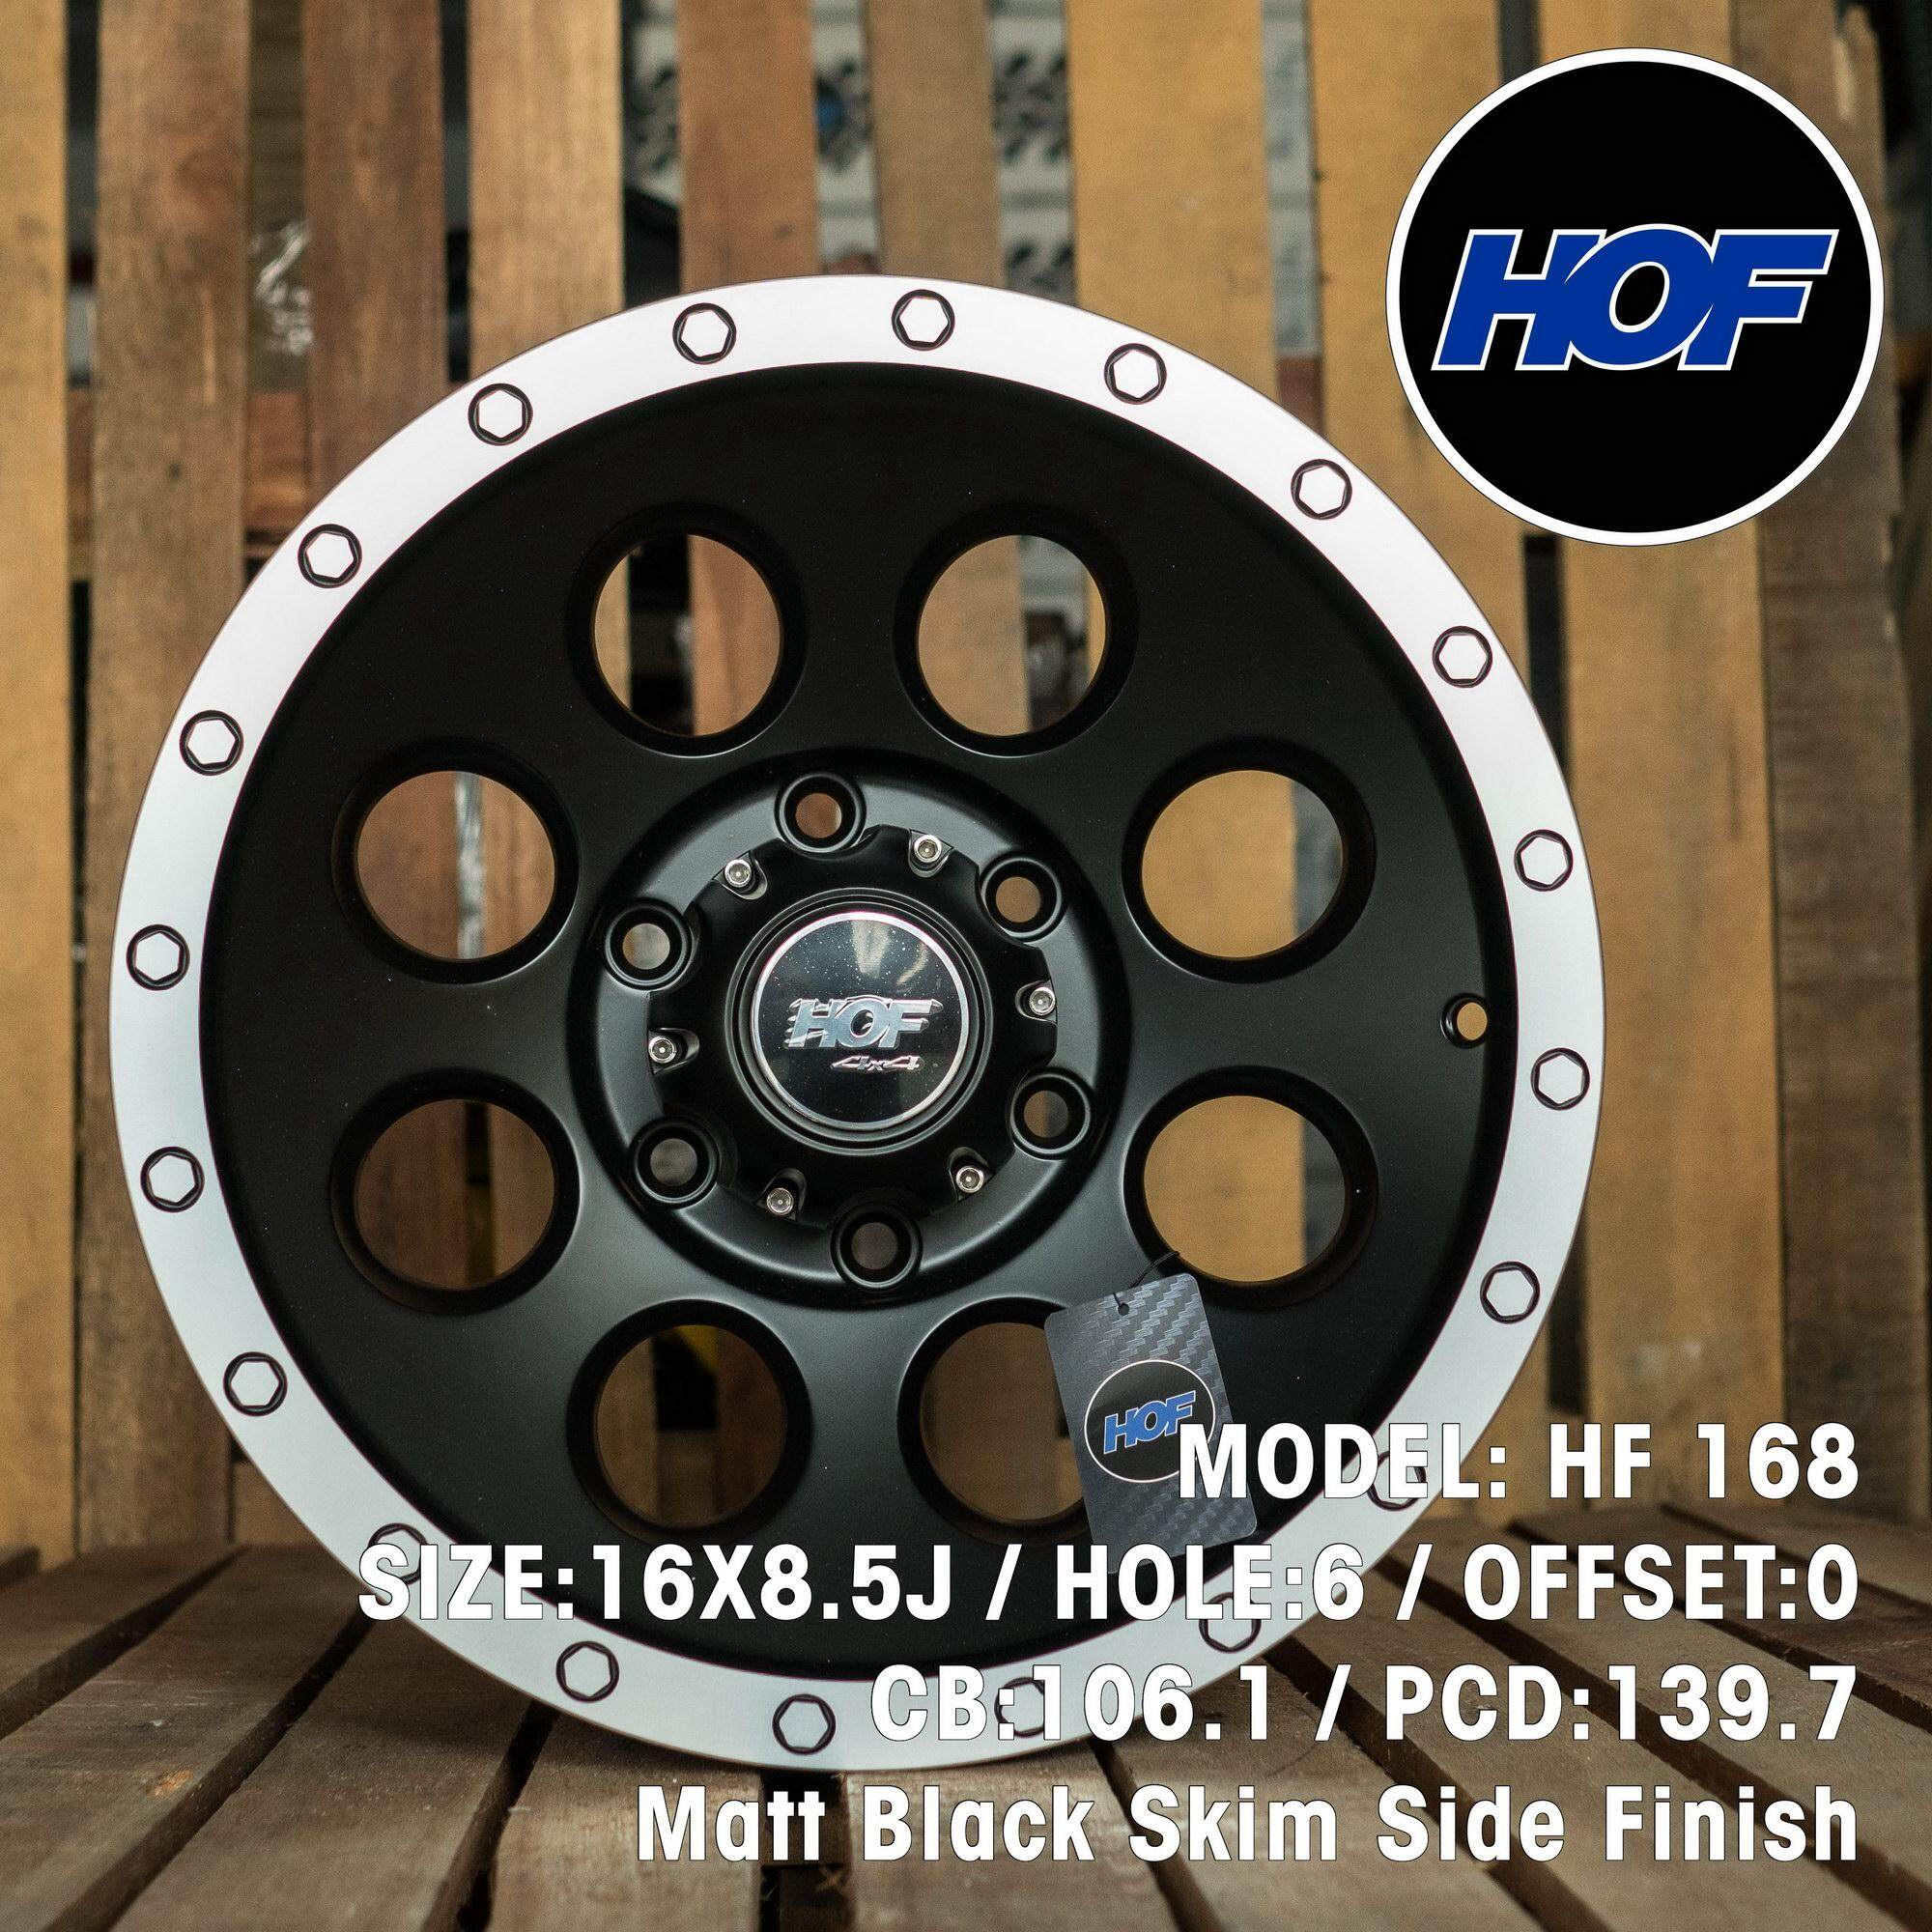 Hof 4x4 Hf168 16x8.5j Matt Black Skim Side Finish By Motareign.